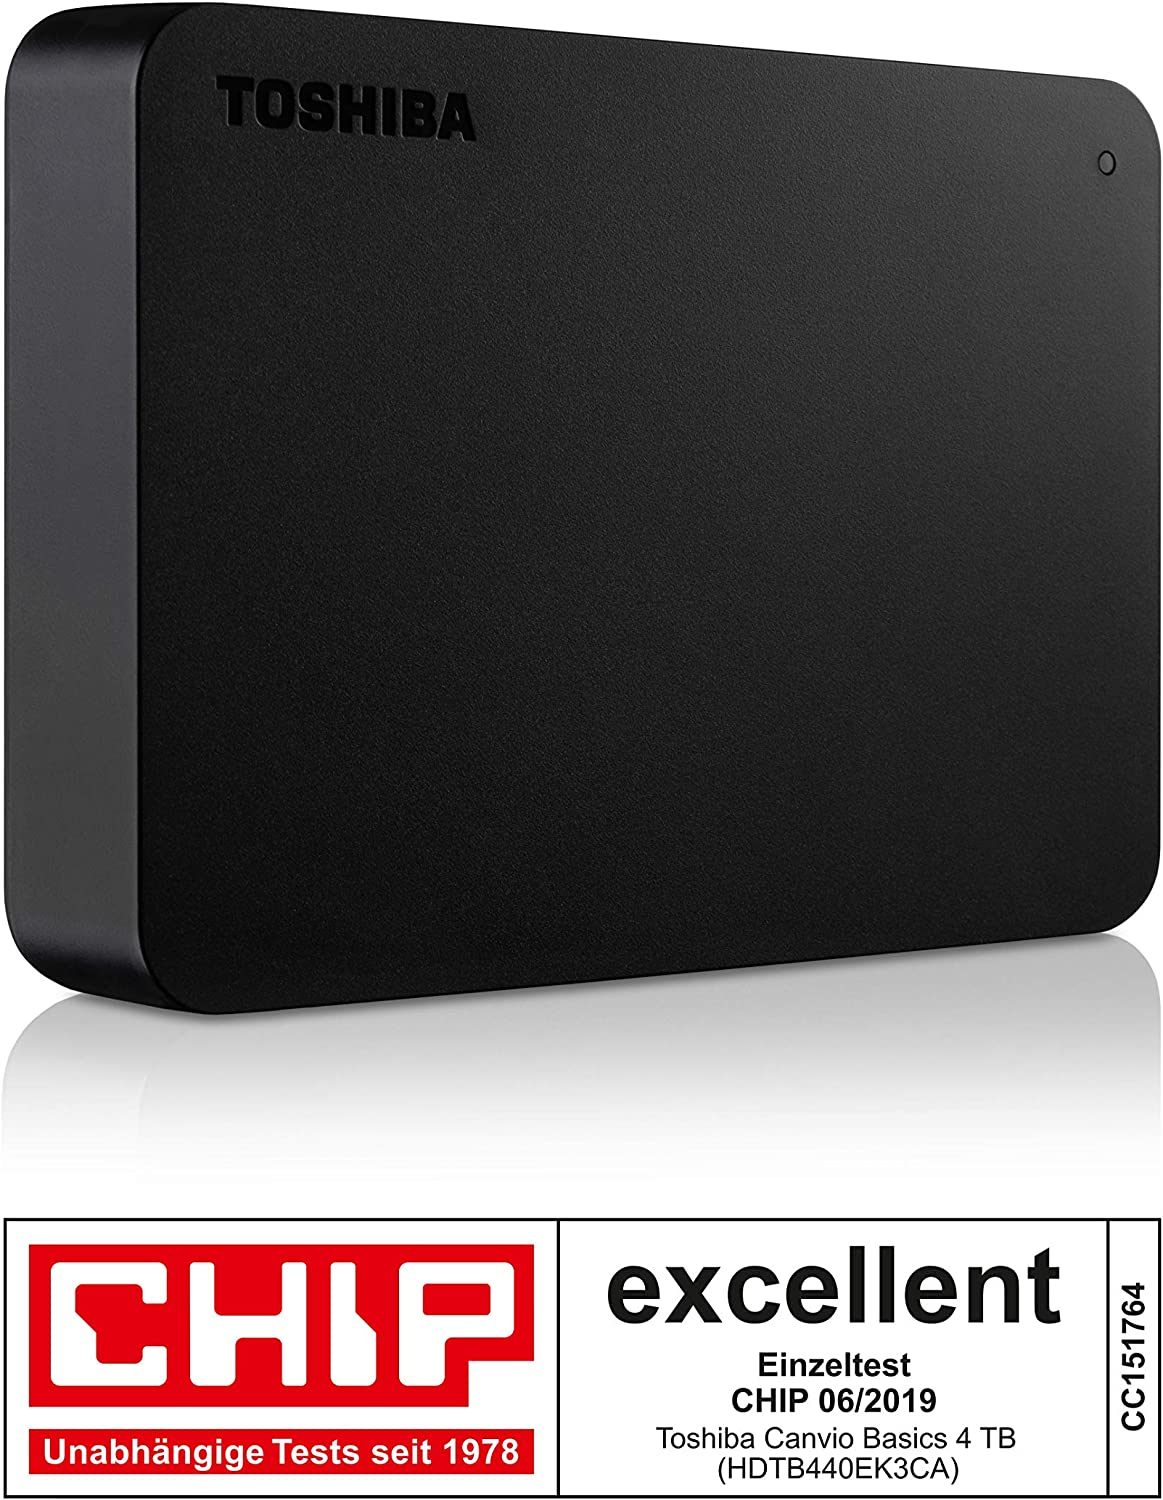 Toshiba HDTB440EK3CA 4TB Canvio Basics 2.5-Inch USB 3.0 Portable External Hard Drive - Black